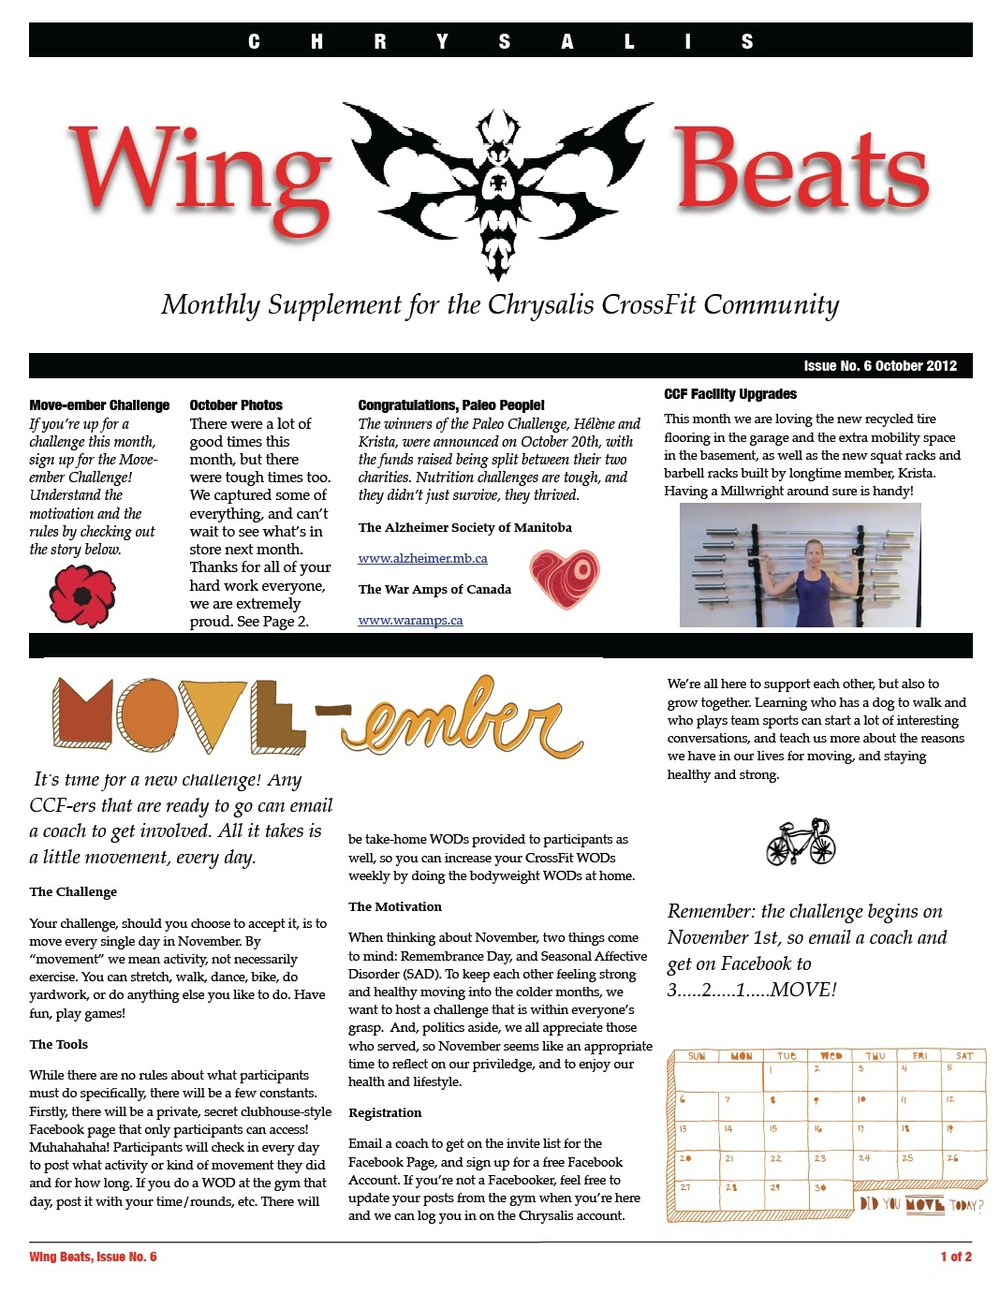 WingBeats Issue #6 - October 2012